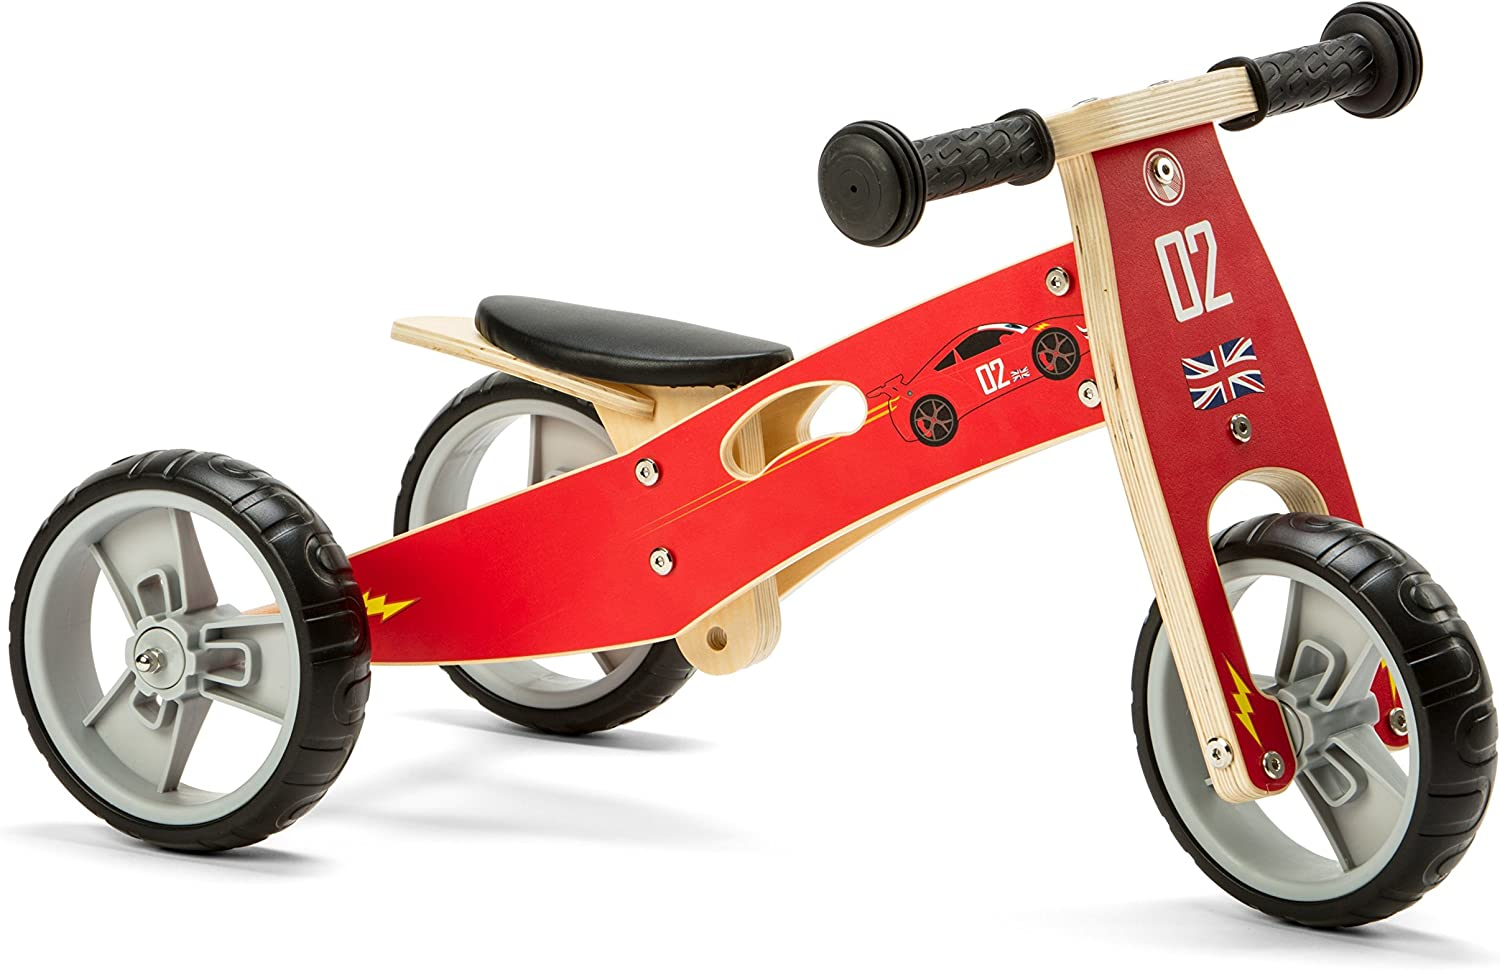 Nicko NIC811 Triciclo de Madera, Rosso, Large, One Size